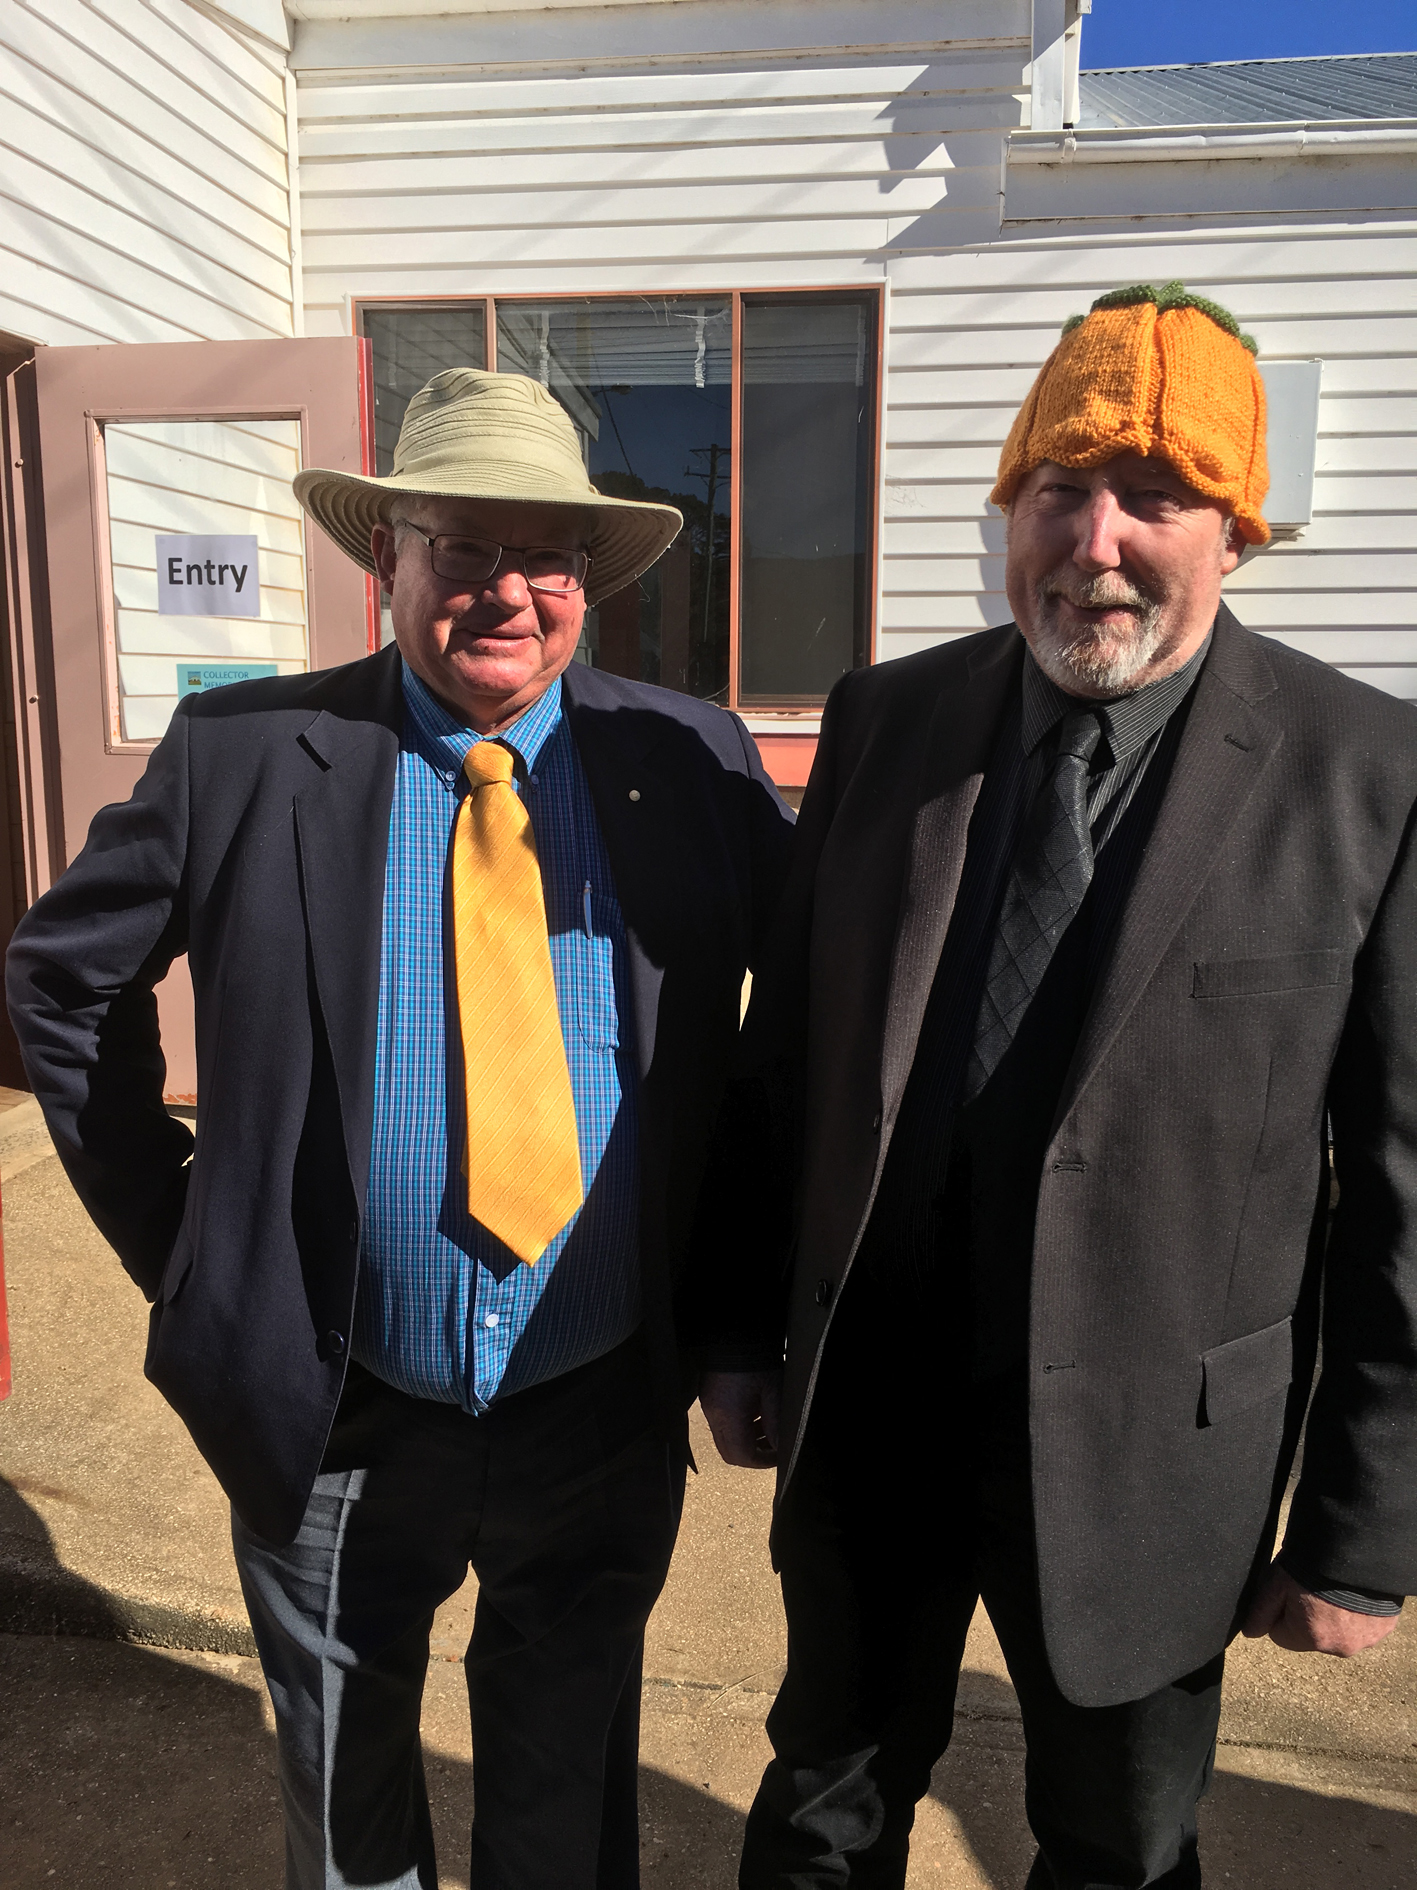 Upper Lachlan Shire Council Mayor Brian McCormack OAM and Cr John Searl at the 2018 Collector Village Pumpkin Festival.